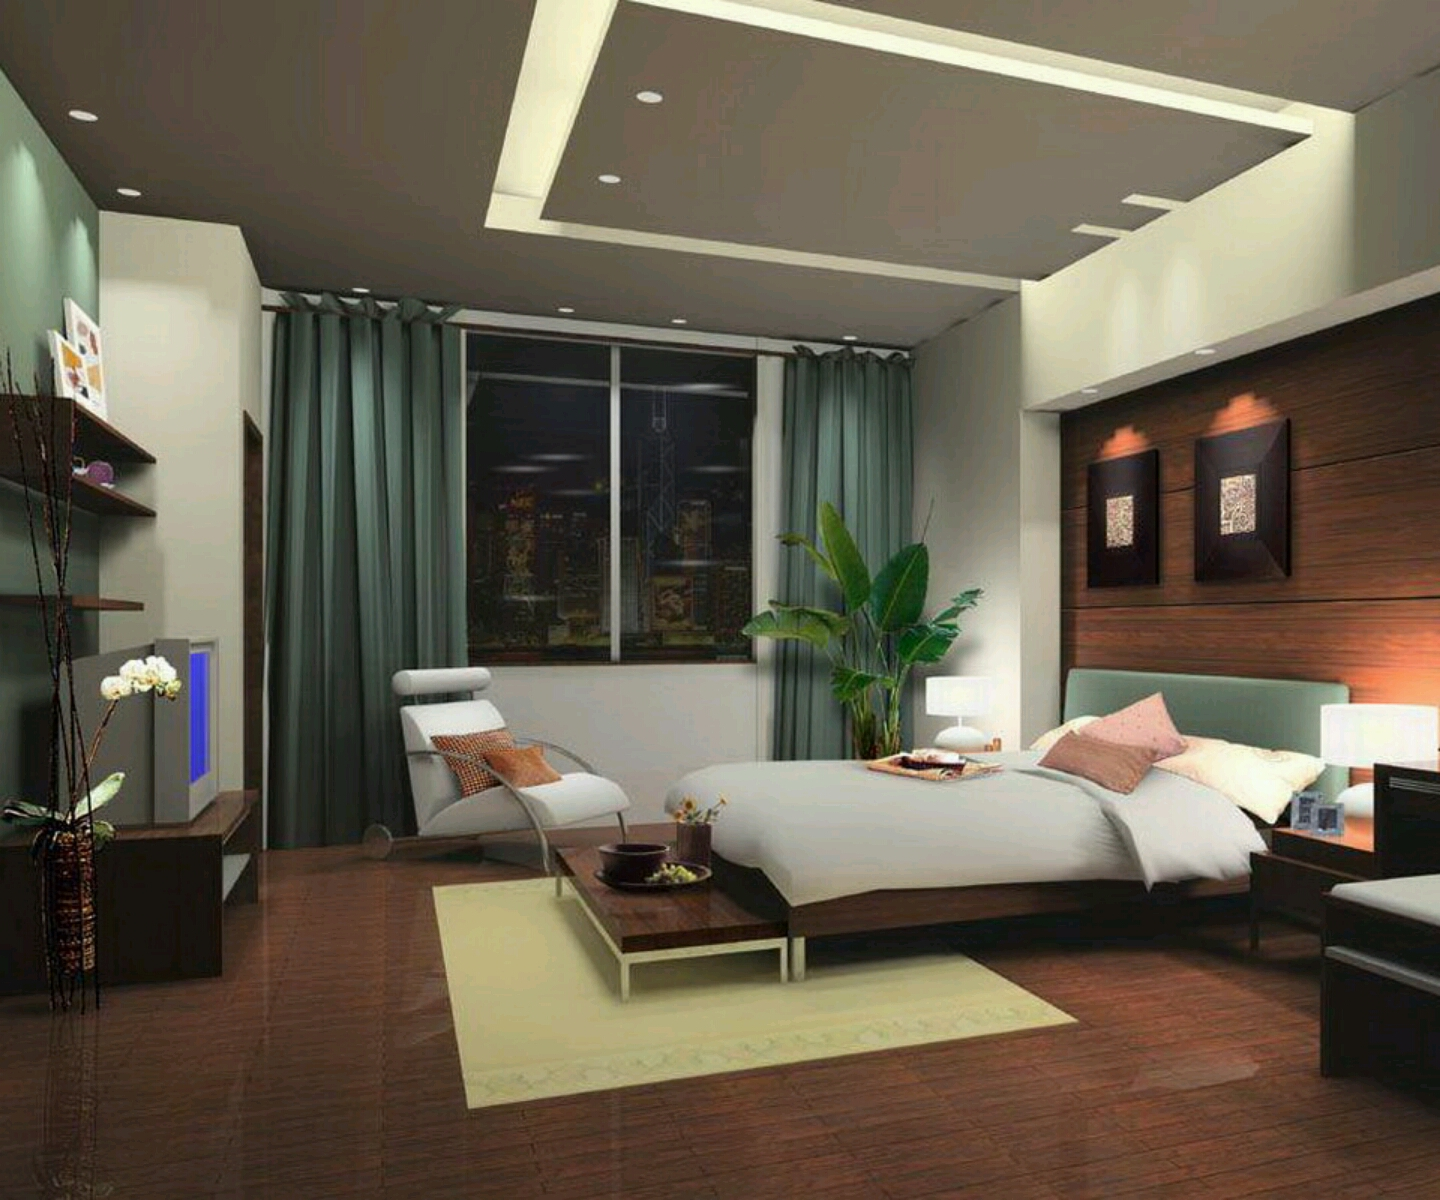 New home designs latest modern bedrooms designs best ideas for Bedroom 2016